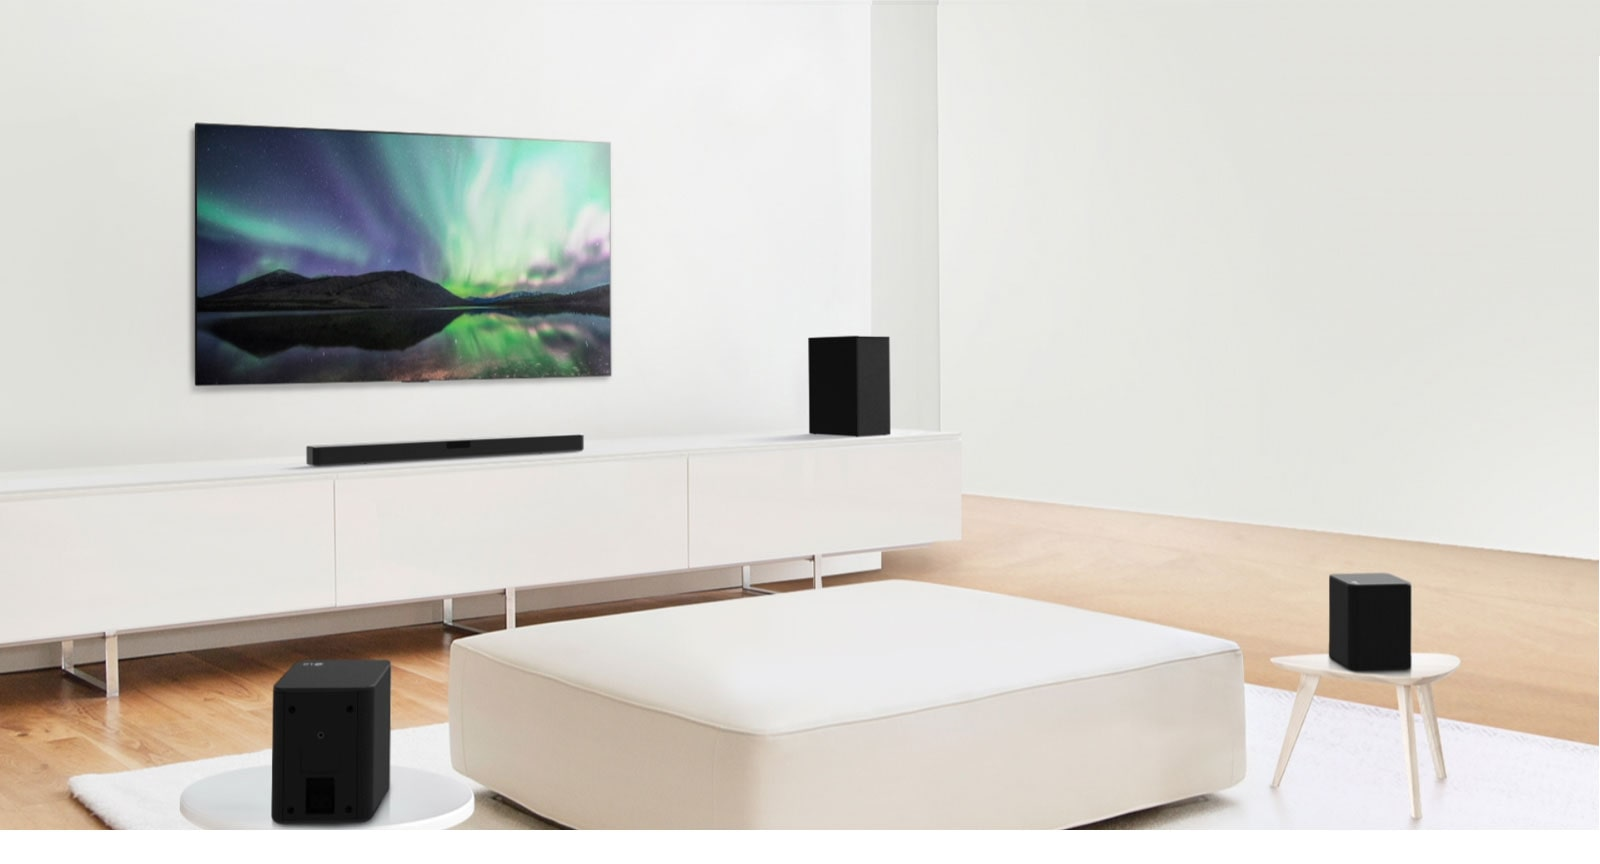 Video preview showing LG Soundbar in a white living room with 4.1 channel setup.